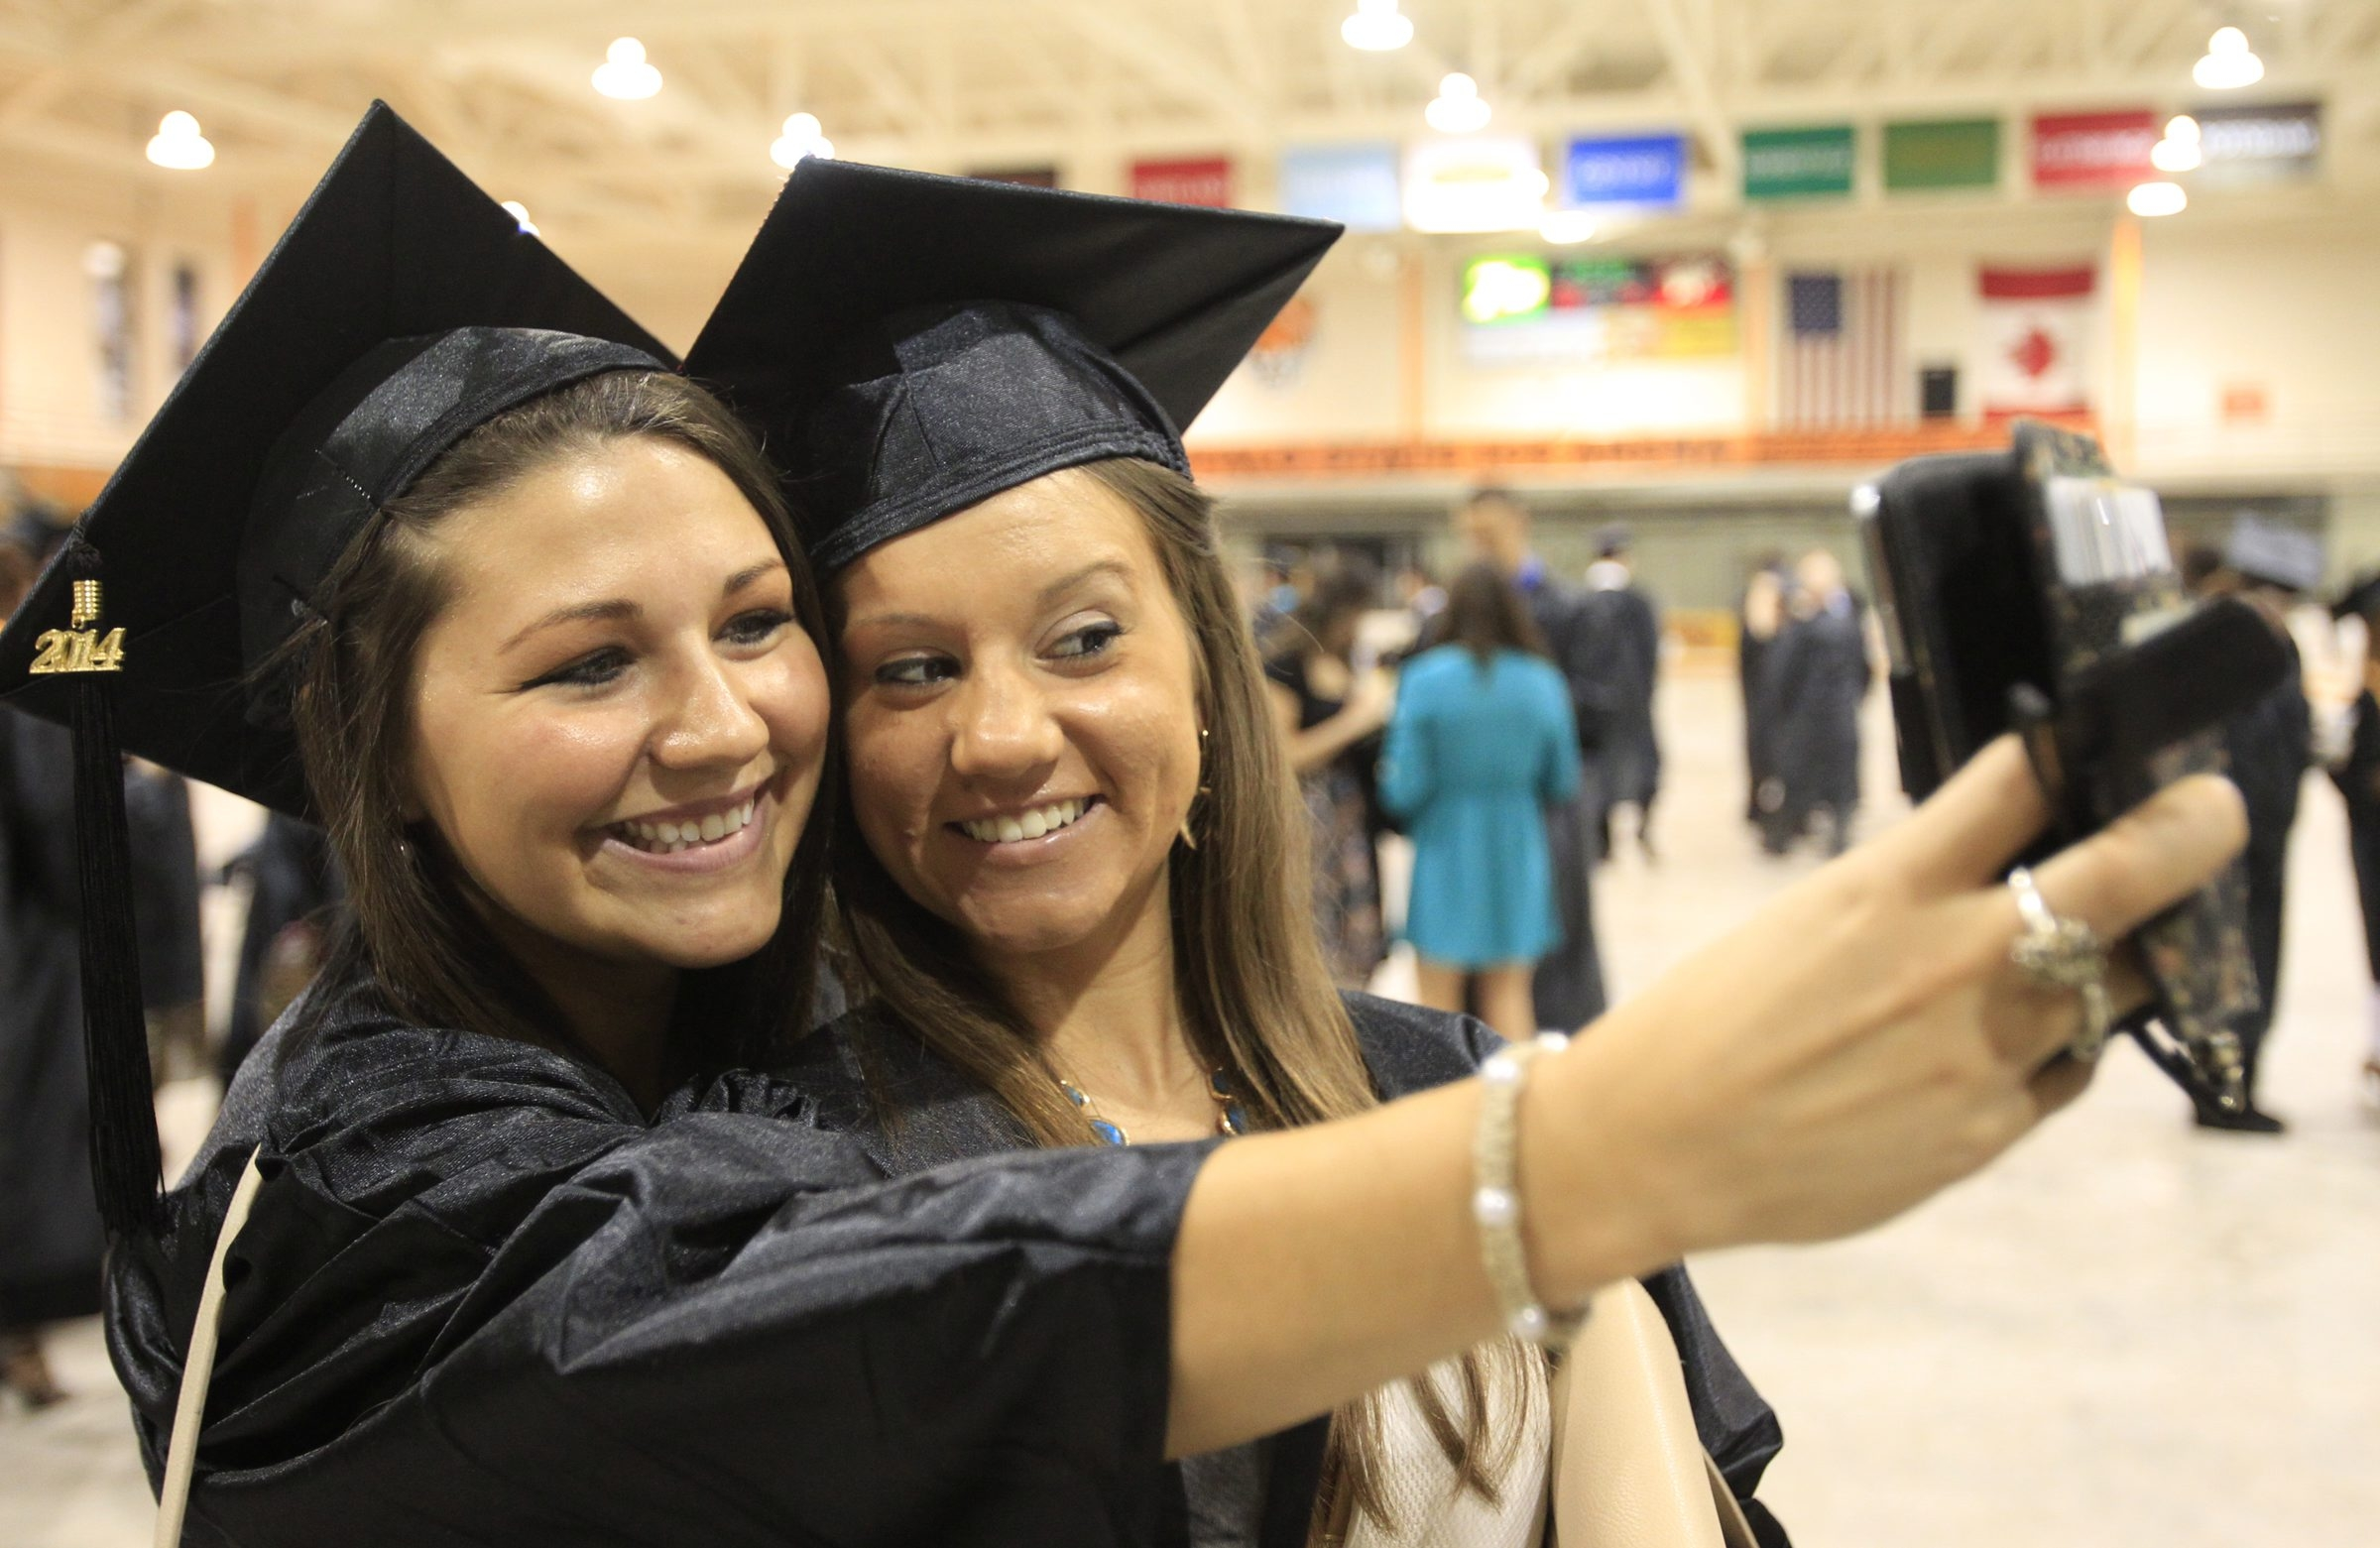 Erie Community College students Jessica Cramer, left, and Jenna Arcuri take a selfie prior to graduation at the Buffalo State Sports Arena on Wednesday. See a photo gallery at BuffaloNews.com.